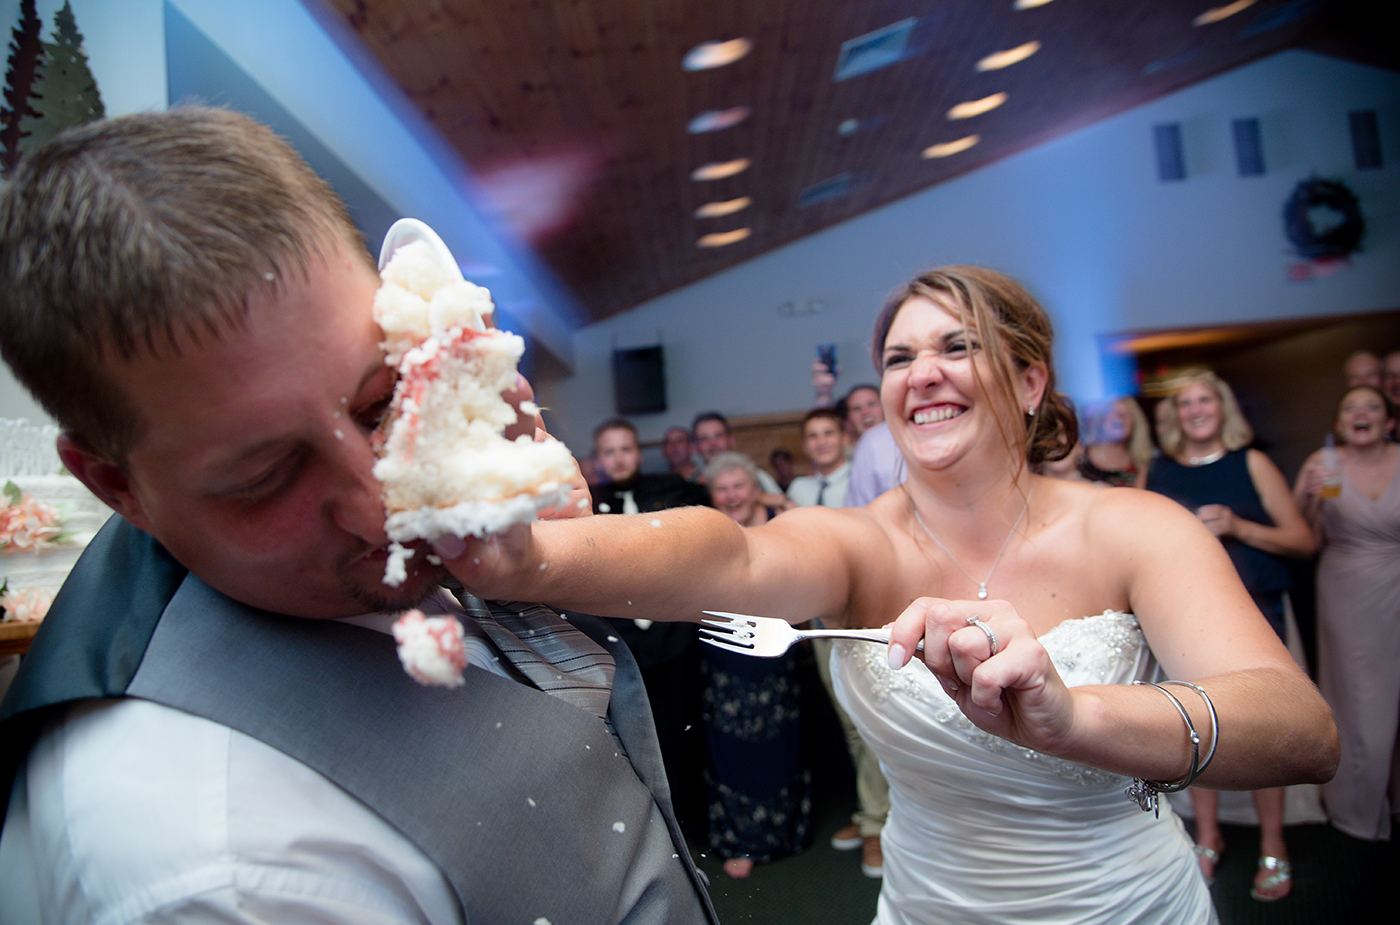 All Occasions Photography Albany NY - Wedding Photography Bride Smashing Cake in Face